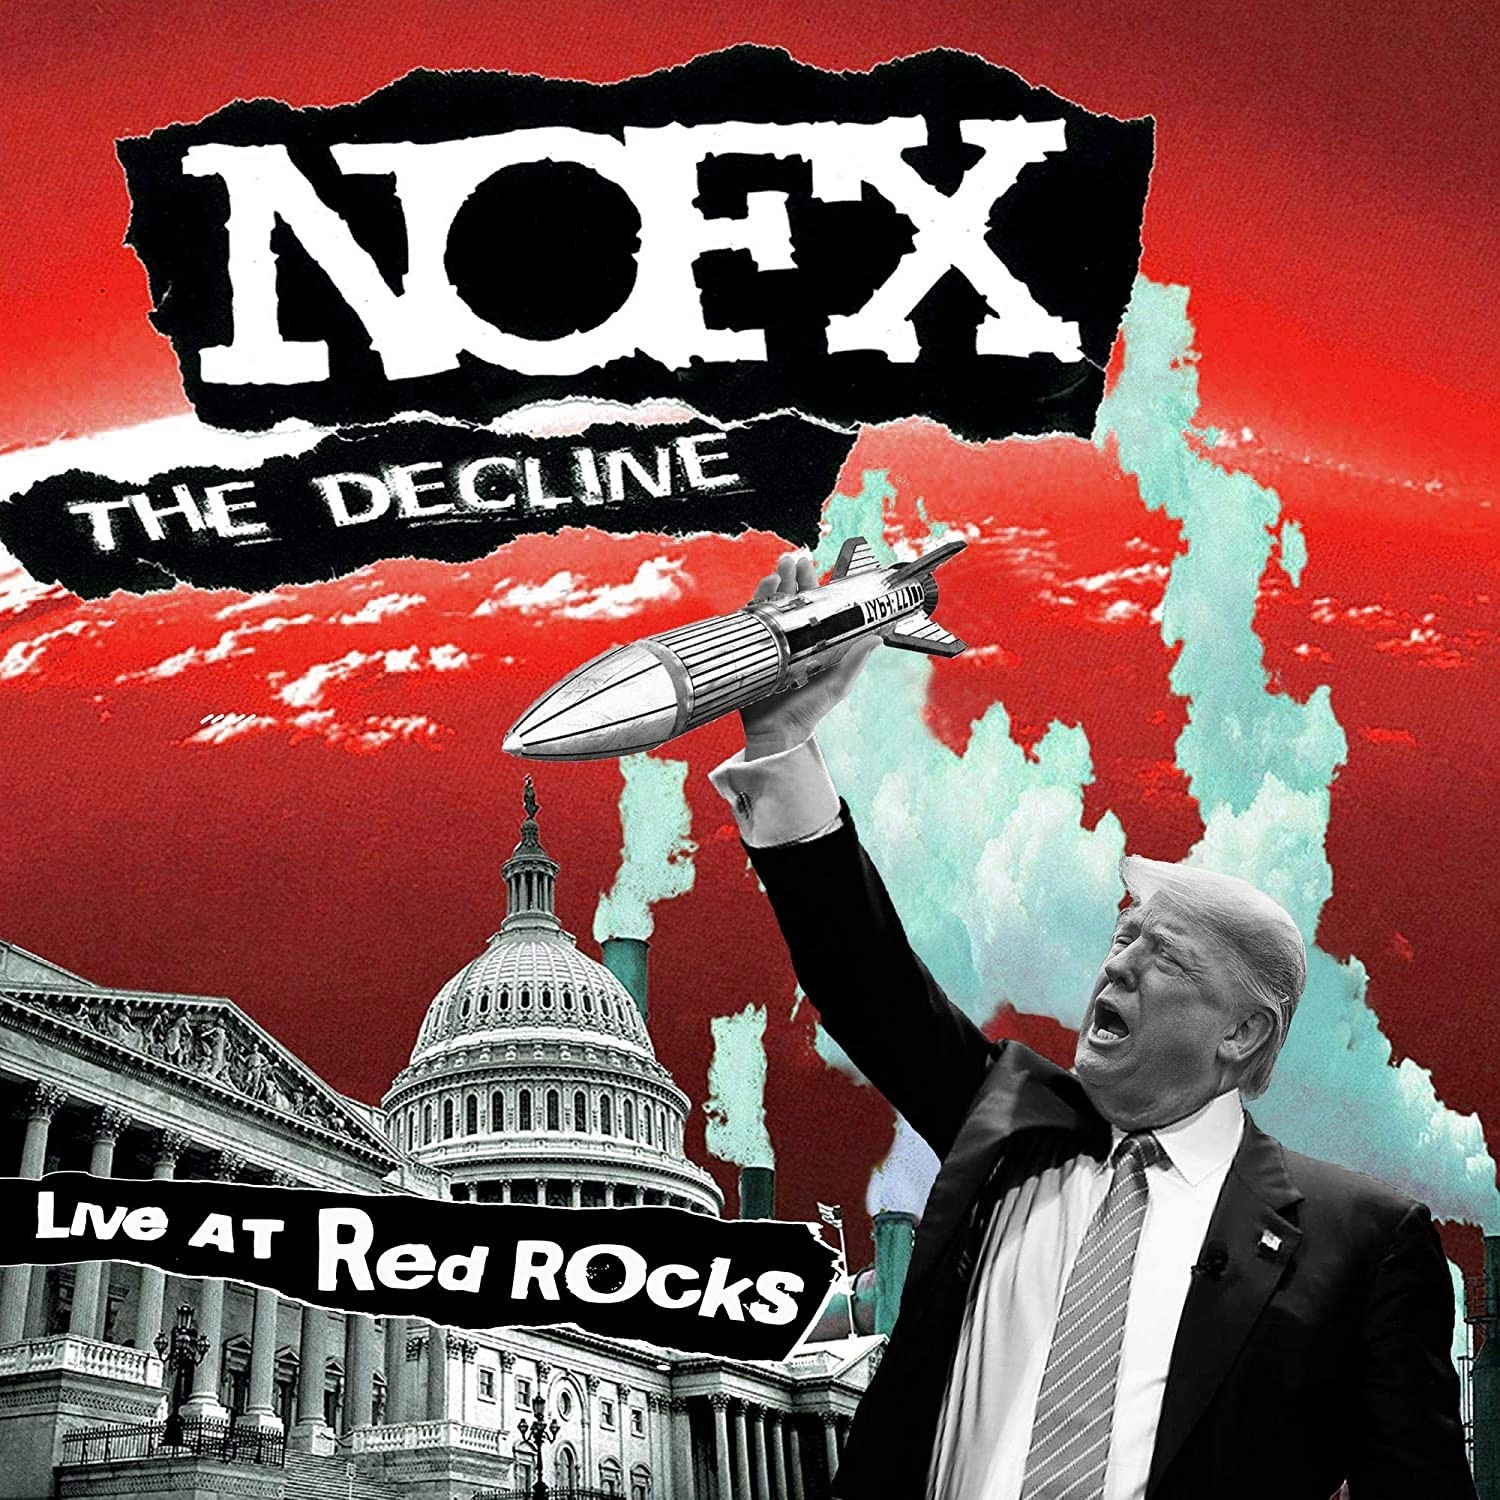 NOFX - The Decline (Live at Red Rocks) Vinyl LP